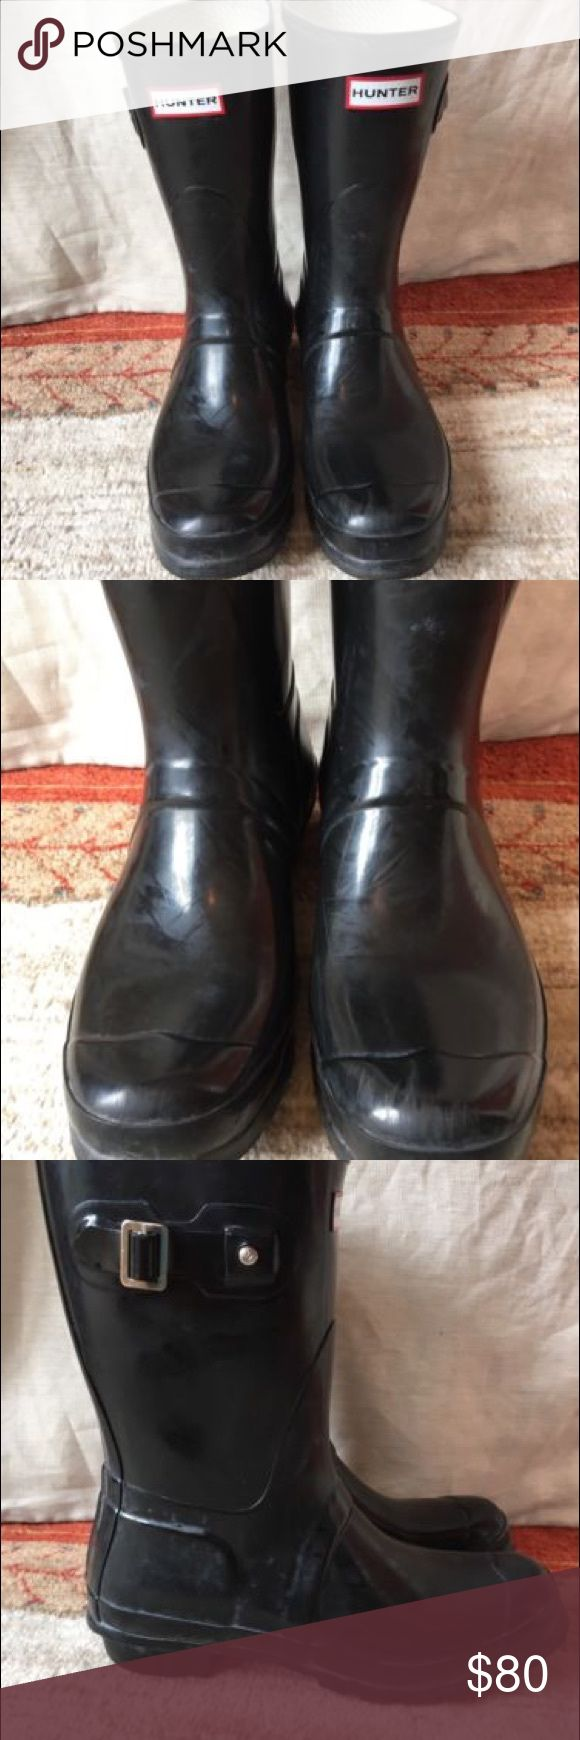 Black Hunter Boots, Short, Size 9 Black Hunter Boots, Short, Size 9, used in very good condition Hunter Shoes Winter & Rain Boots